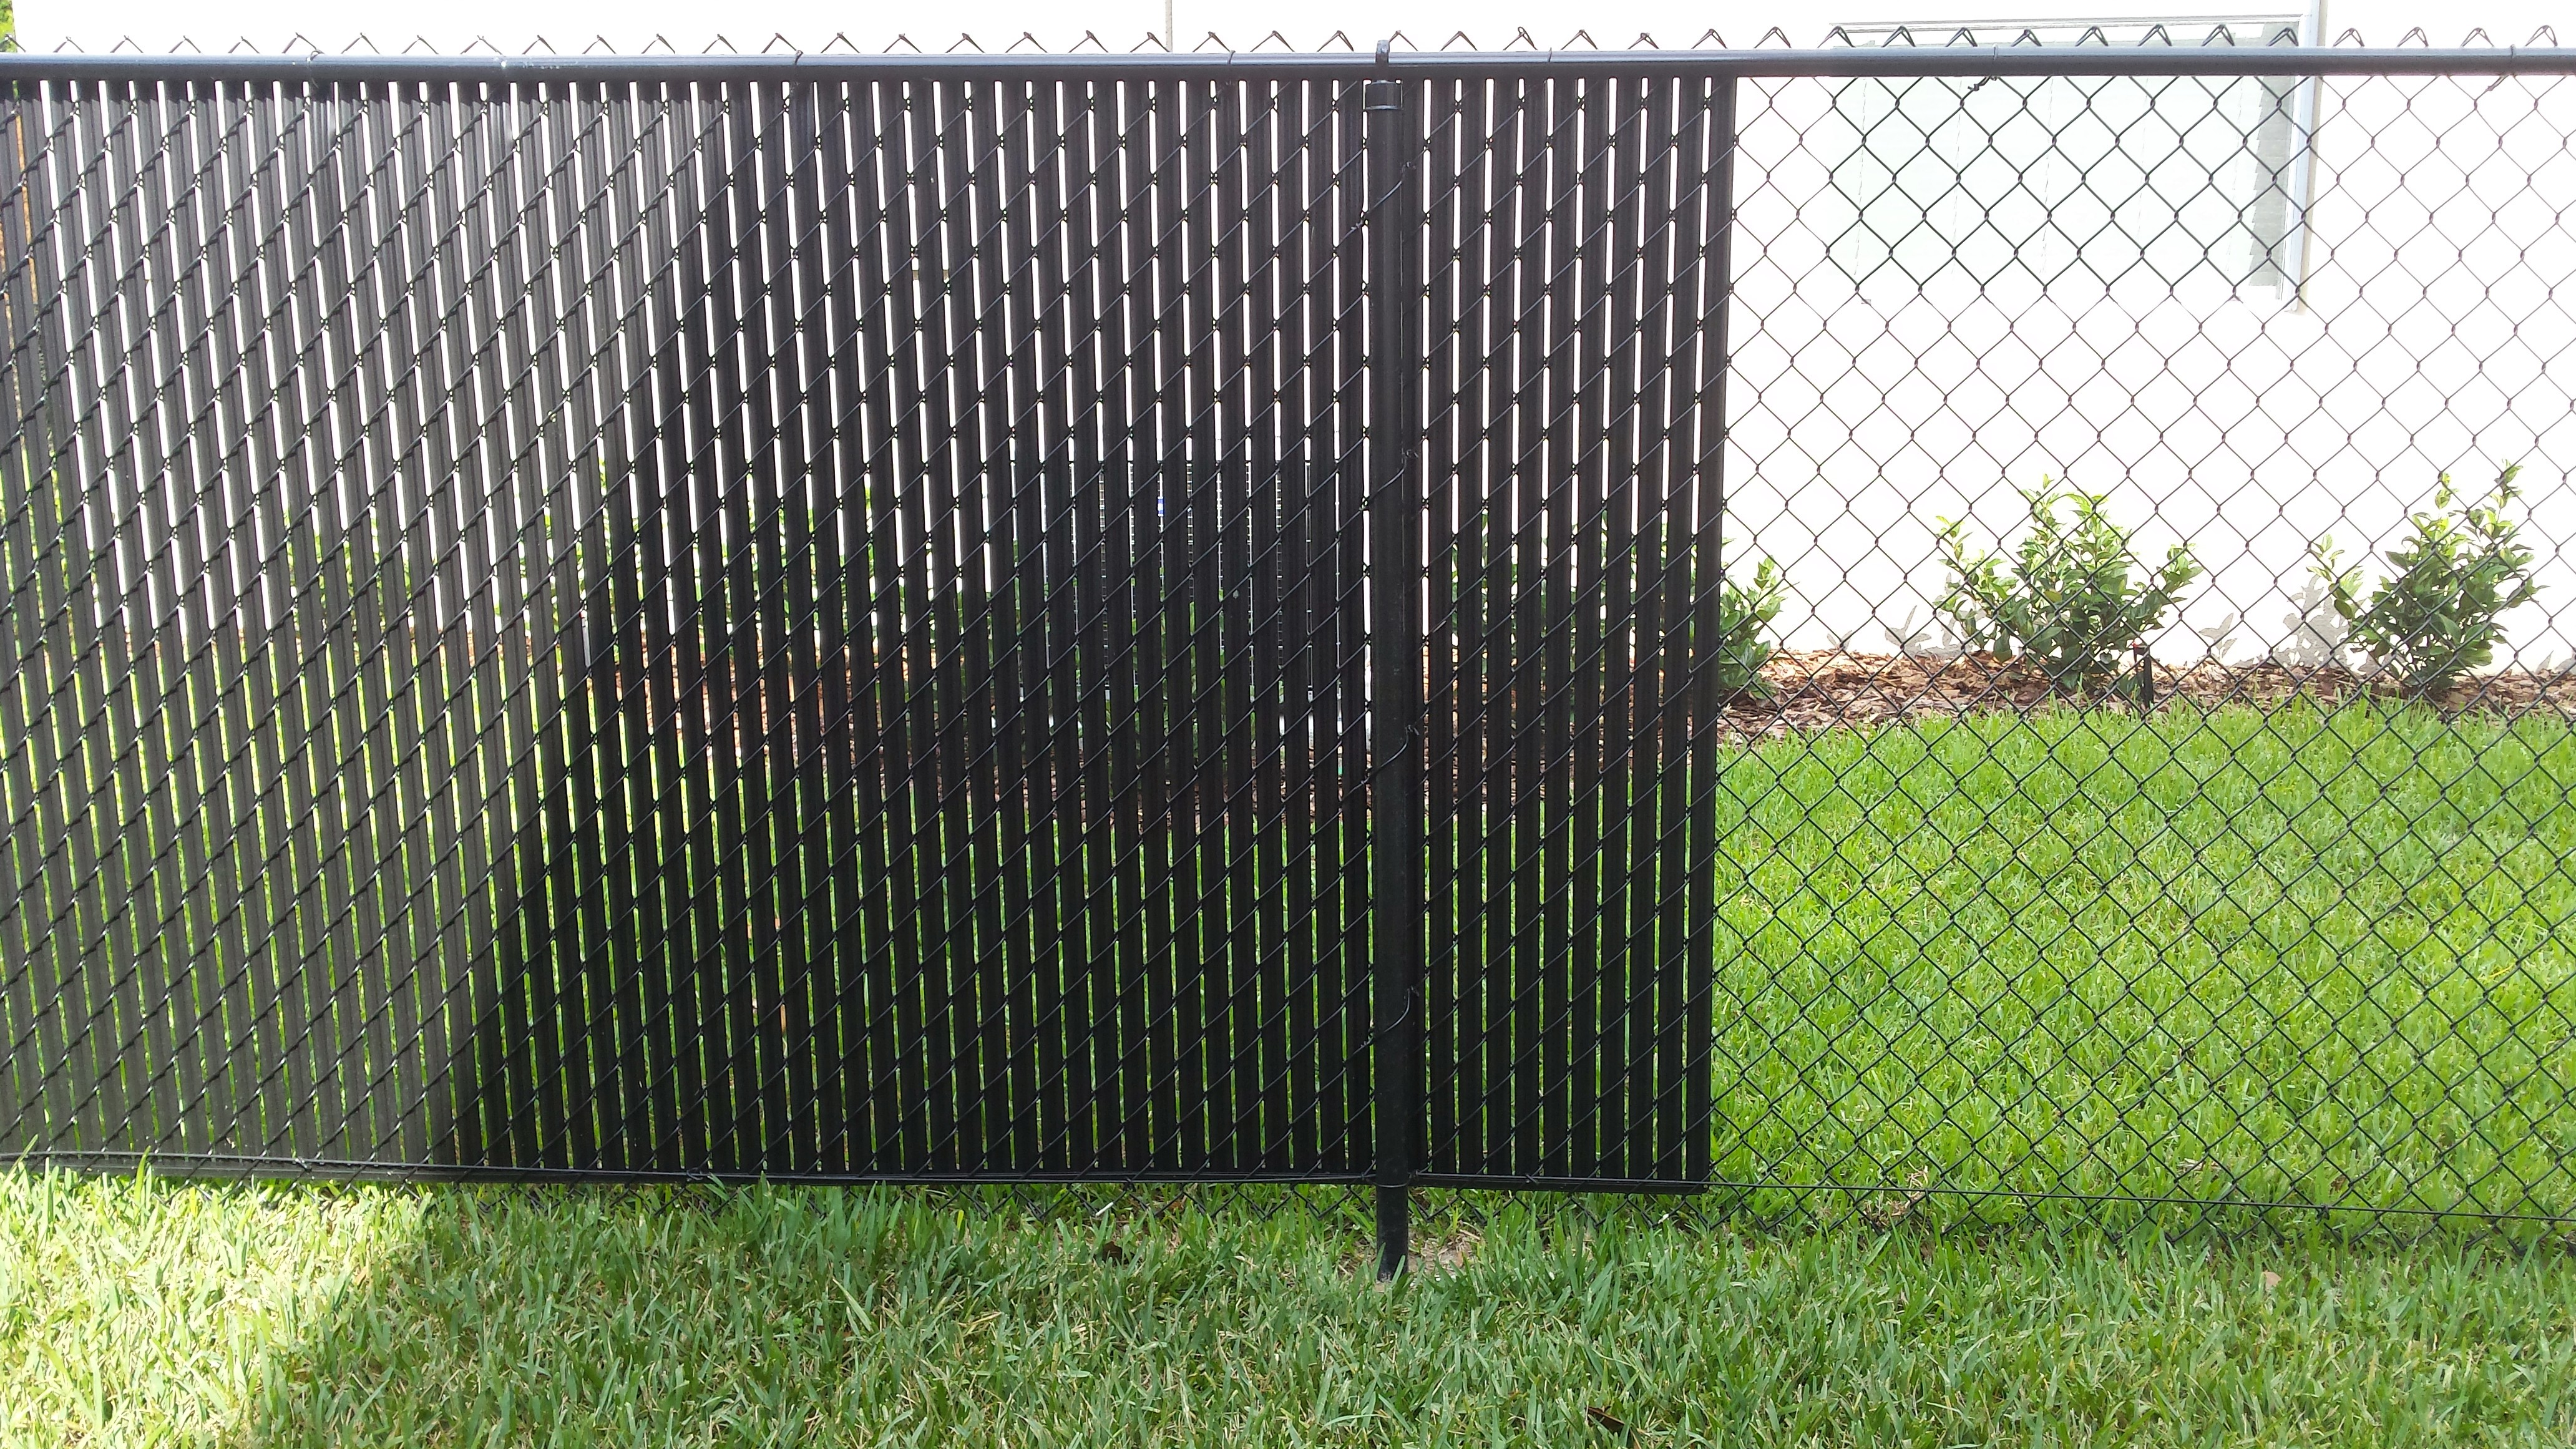 Privacy screen for chain link fence sears - Astm F3000 F3000m 13 Standard Specification Polymer